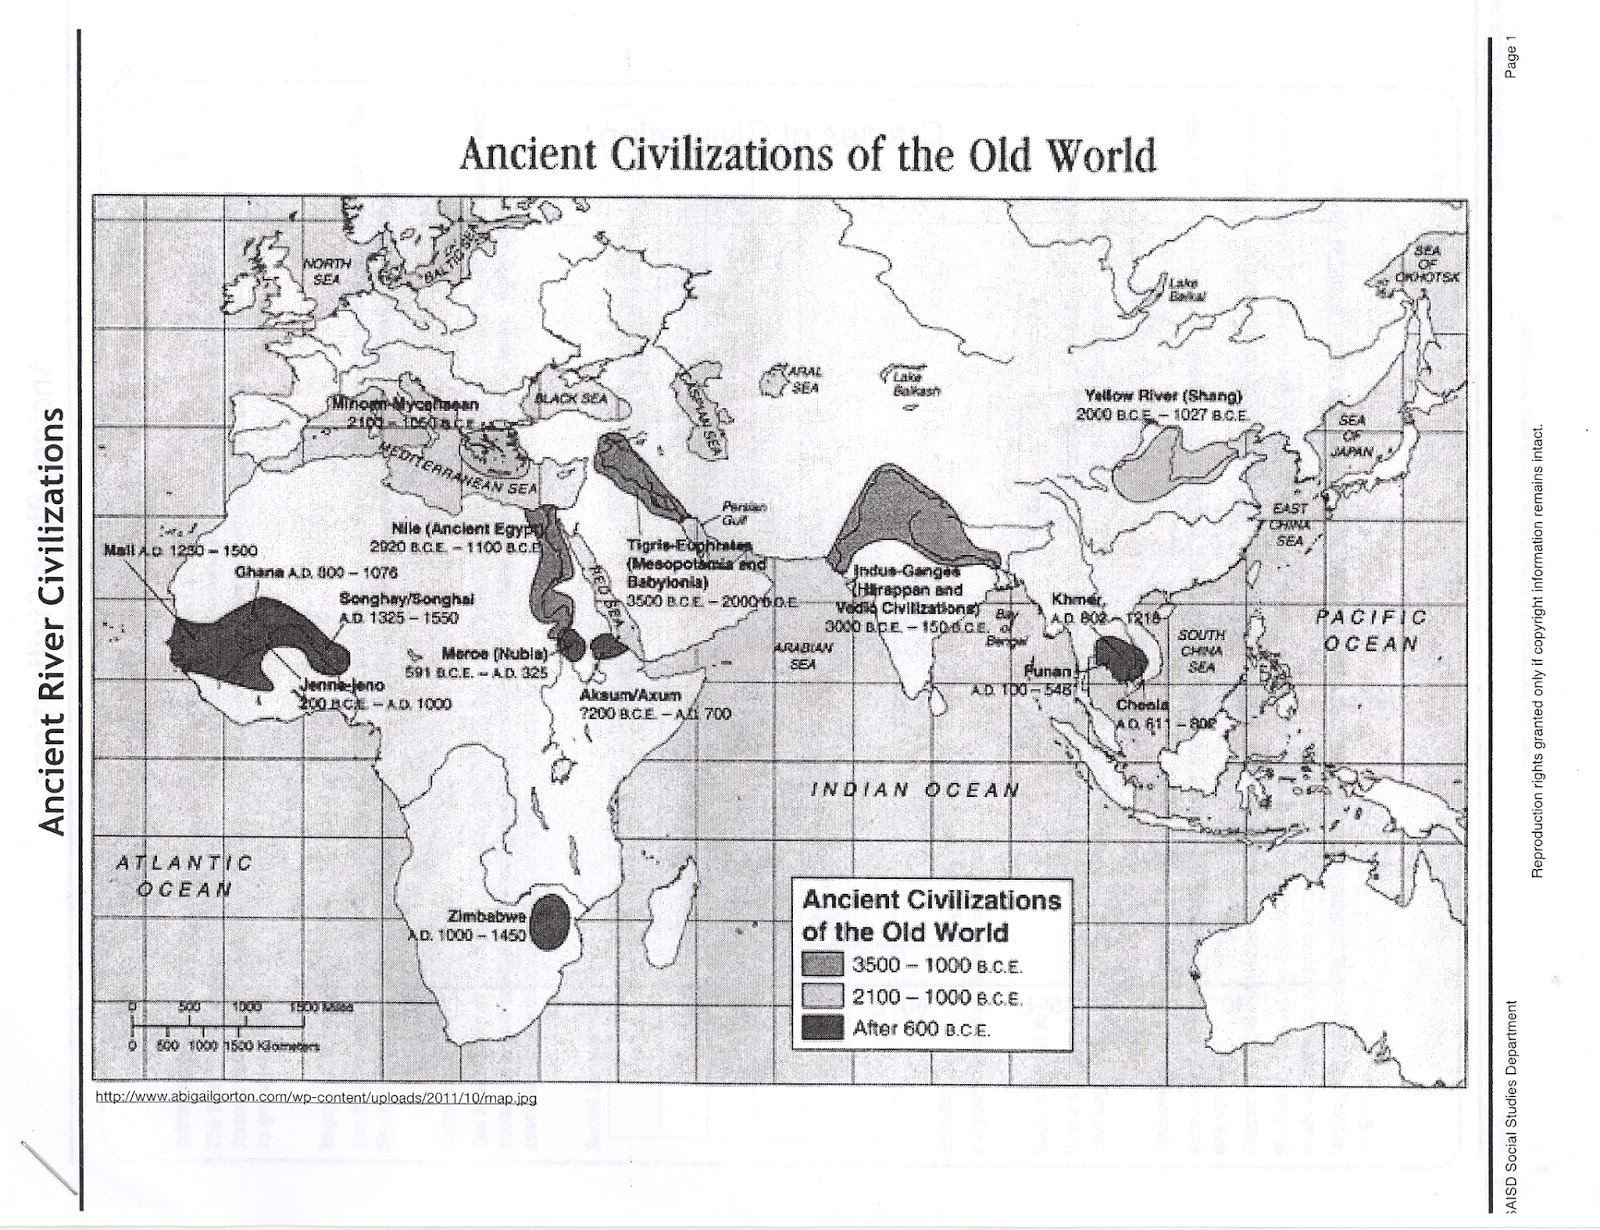 Mr E S World History Page October